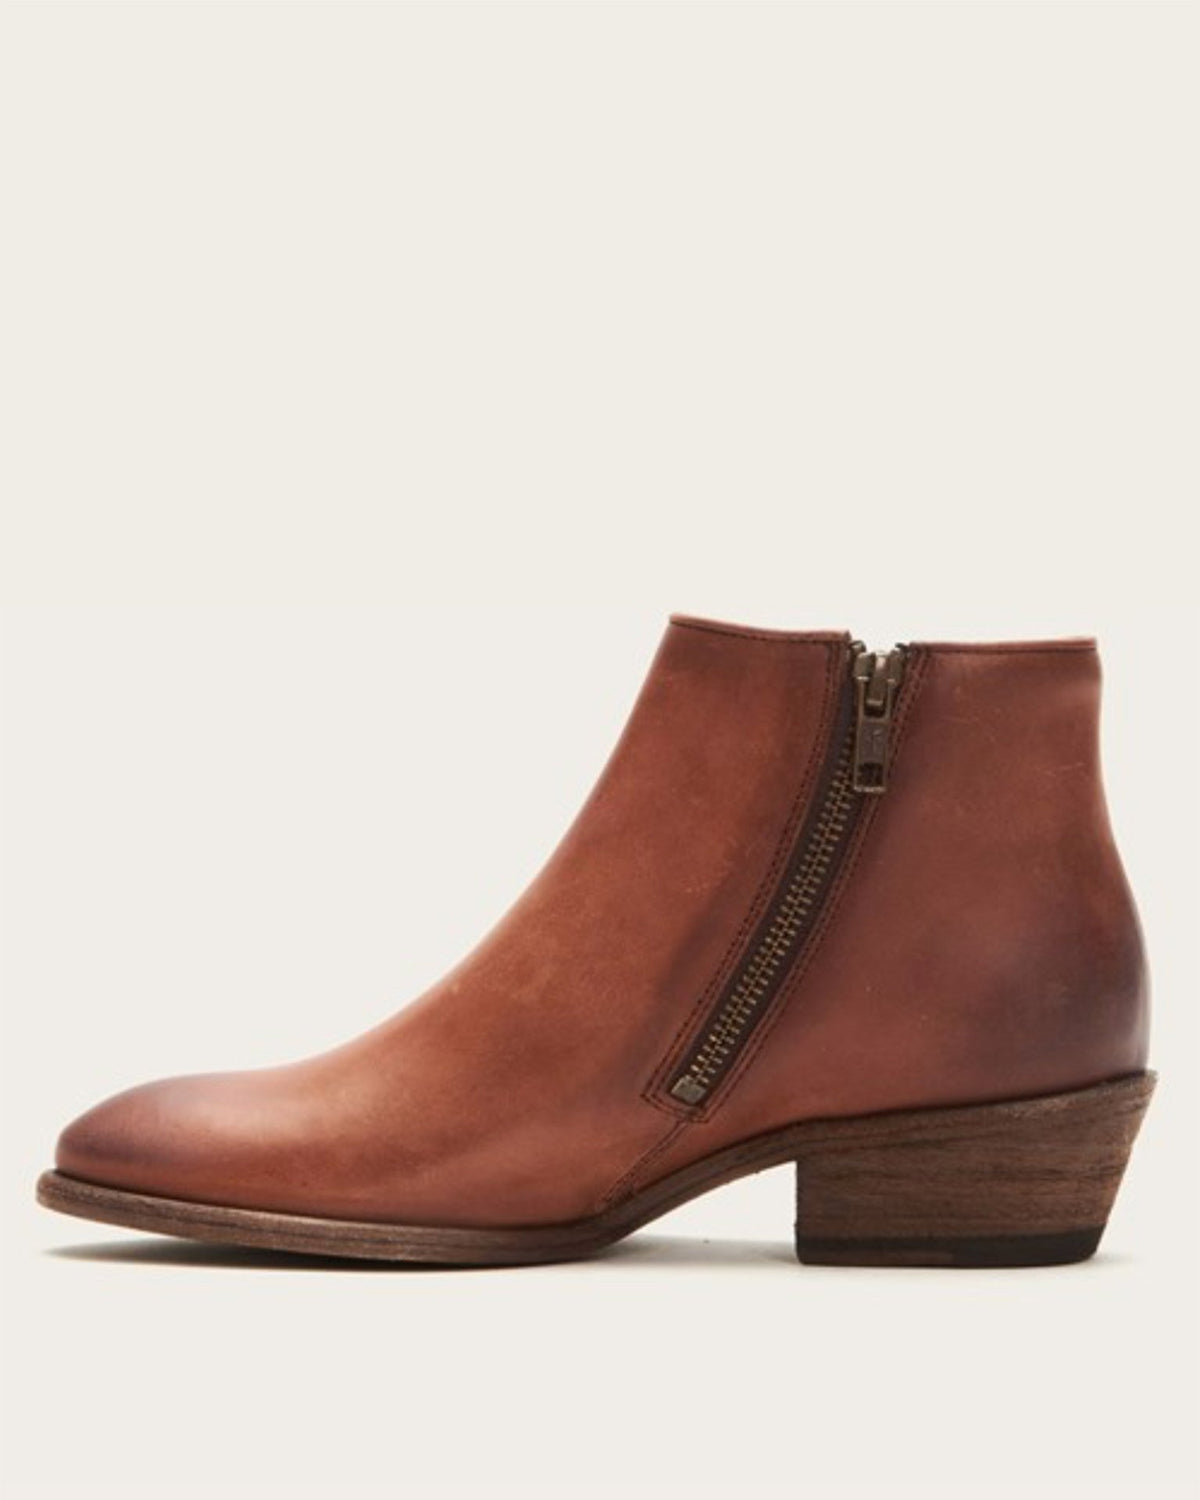 Frye Shoes Cognac / 6 Carson Piping Bootie